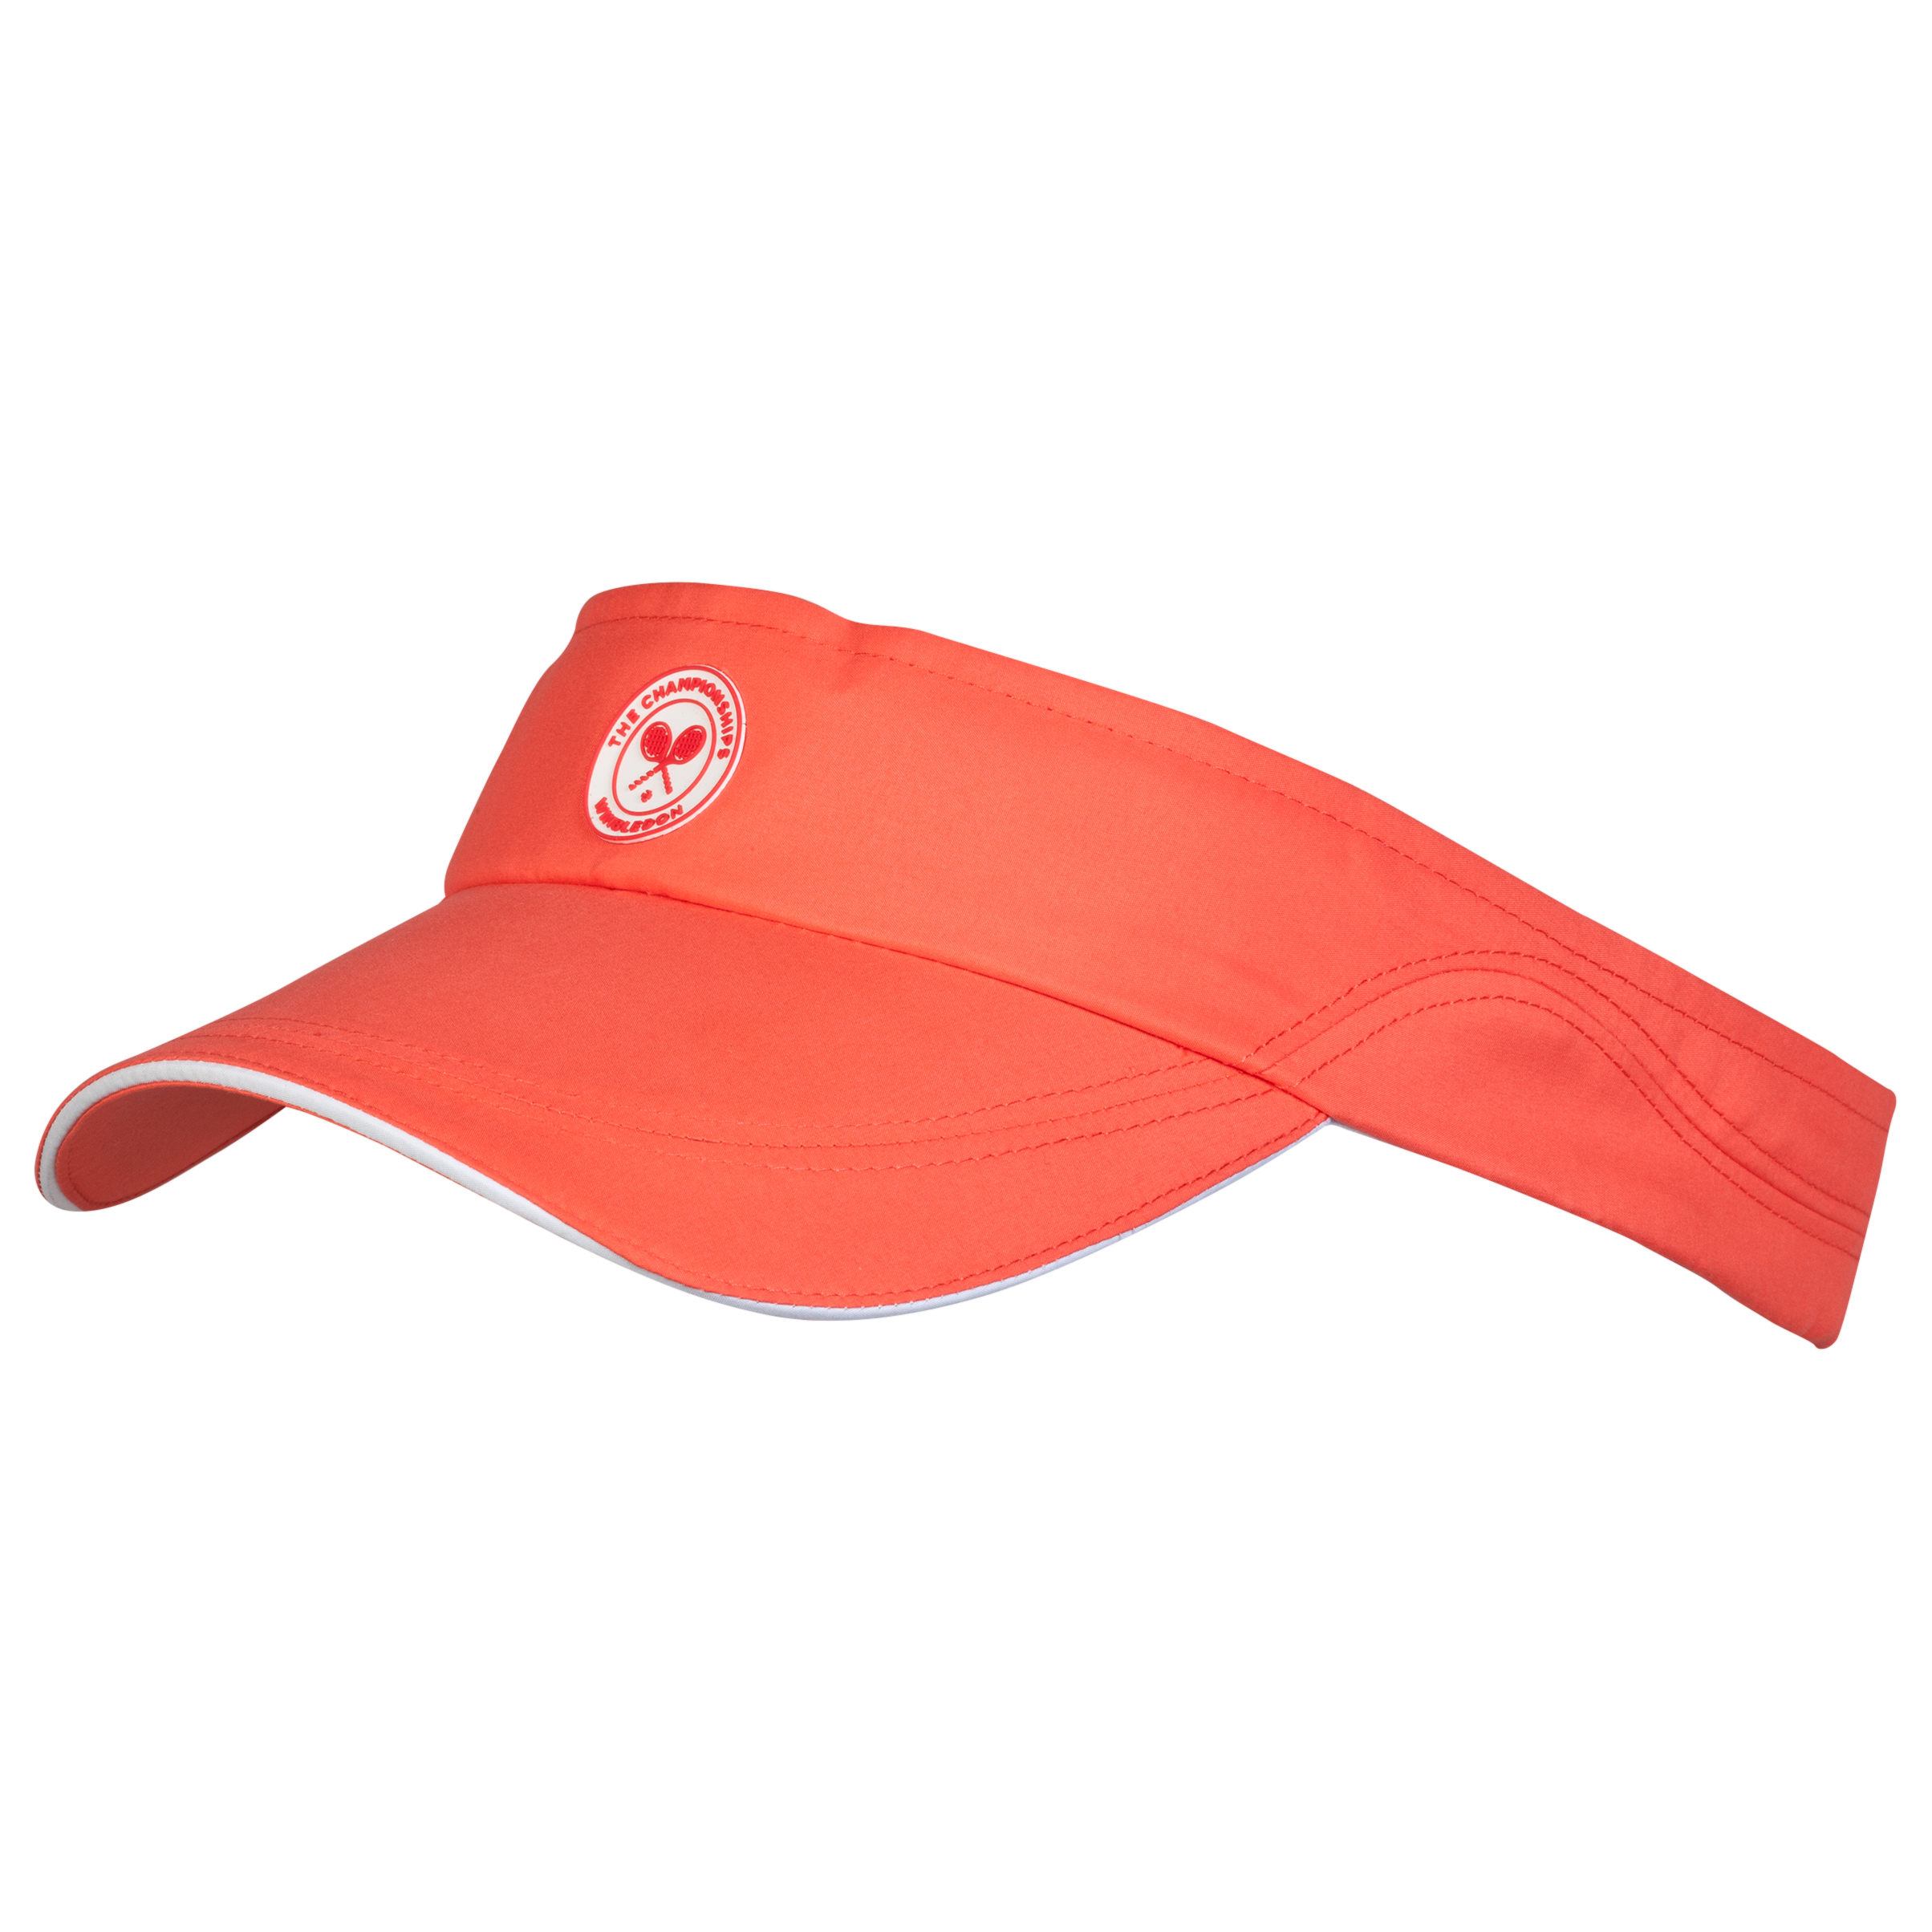 Wimbledon Adjustable Visor - Ladies - Coral